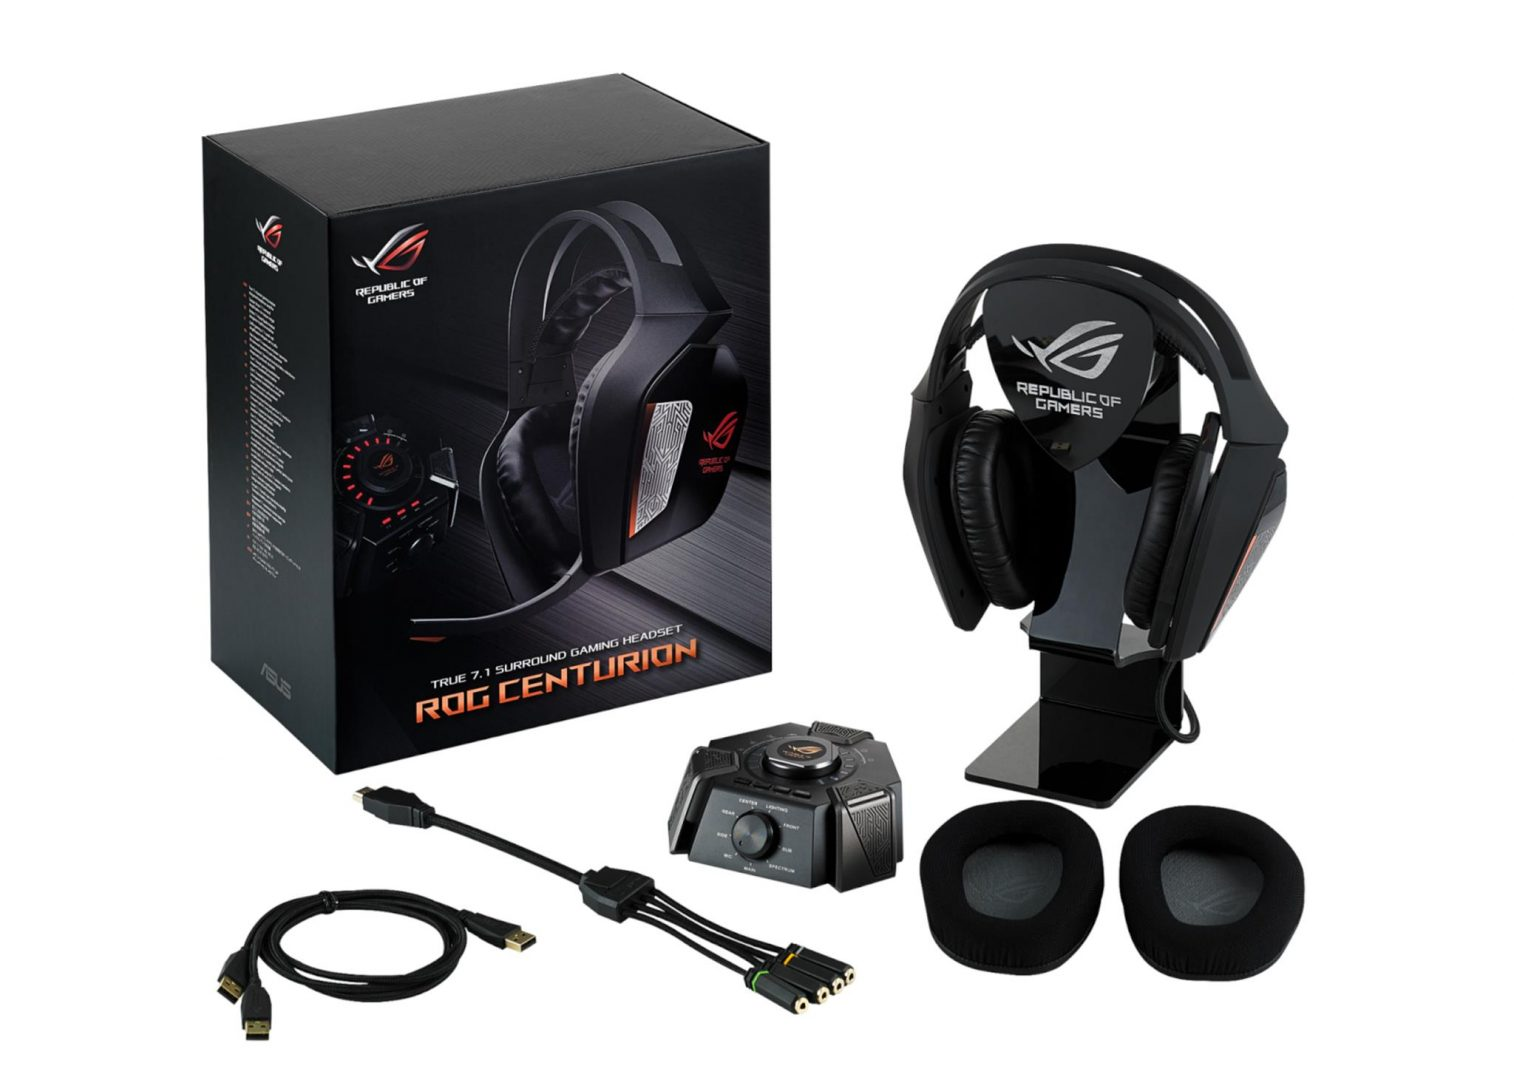 rog-centurion_true-7-1-surround-gaming-headset_whats-in-the-box